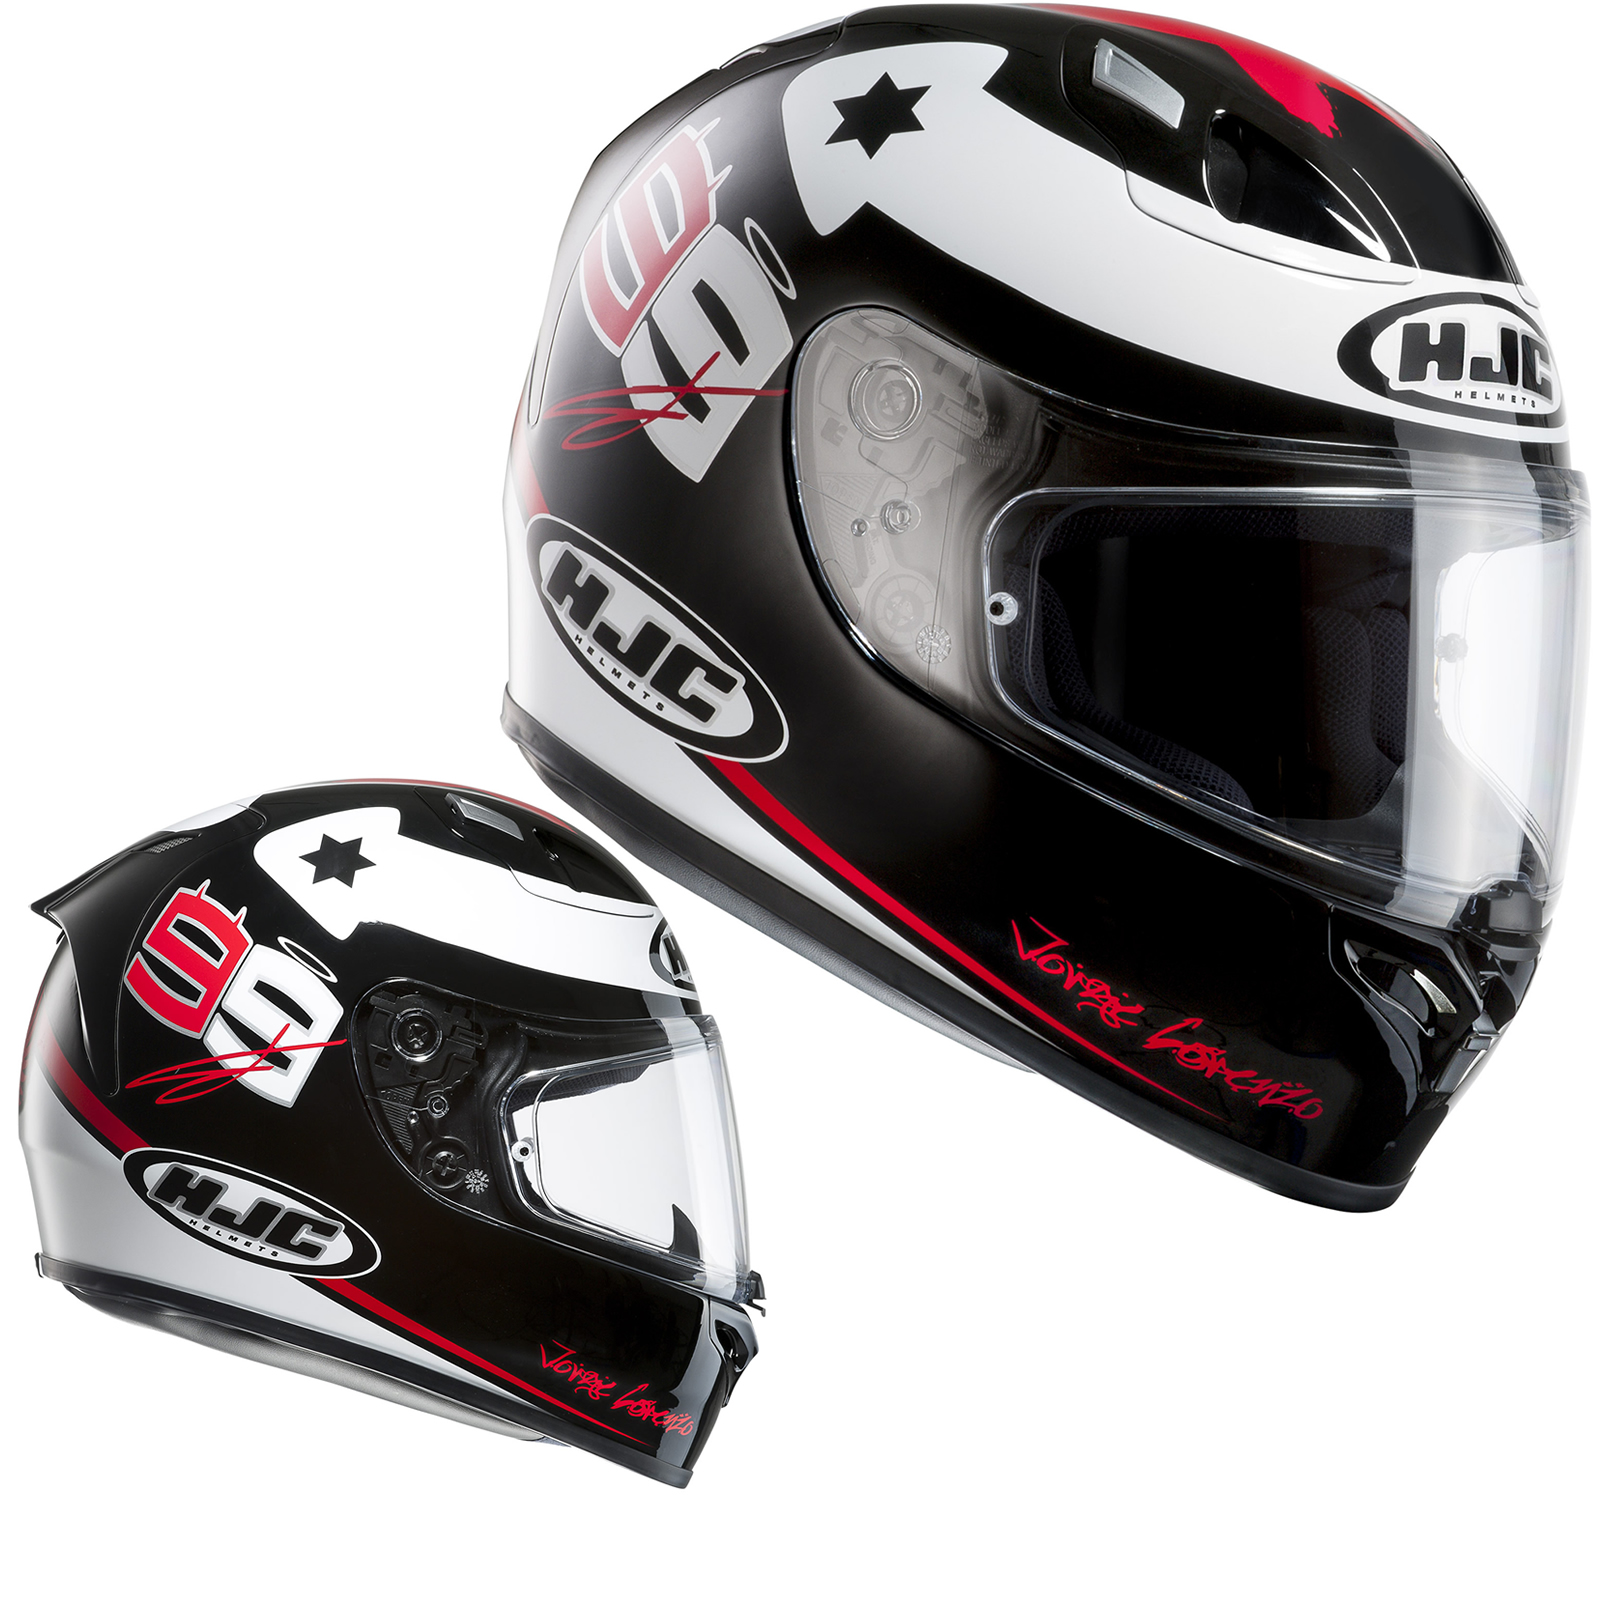 hjc fg 17 x fuera lorenzo motorcycle helmet full face. Black Bedroom Furniture Sets. Home Design Ideas